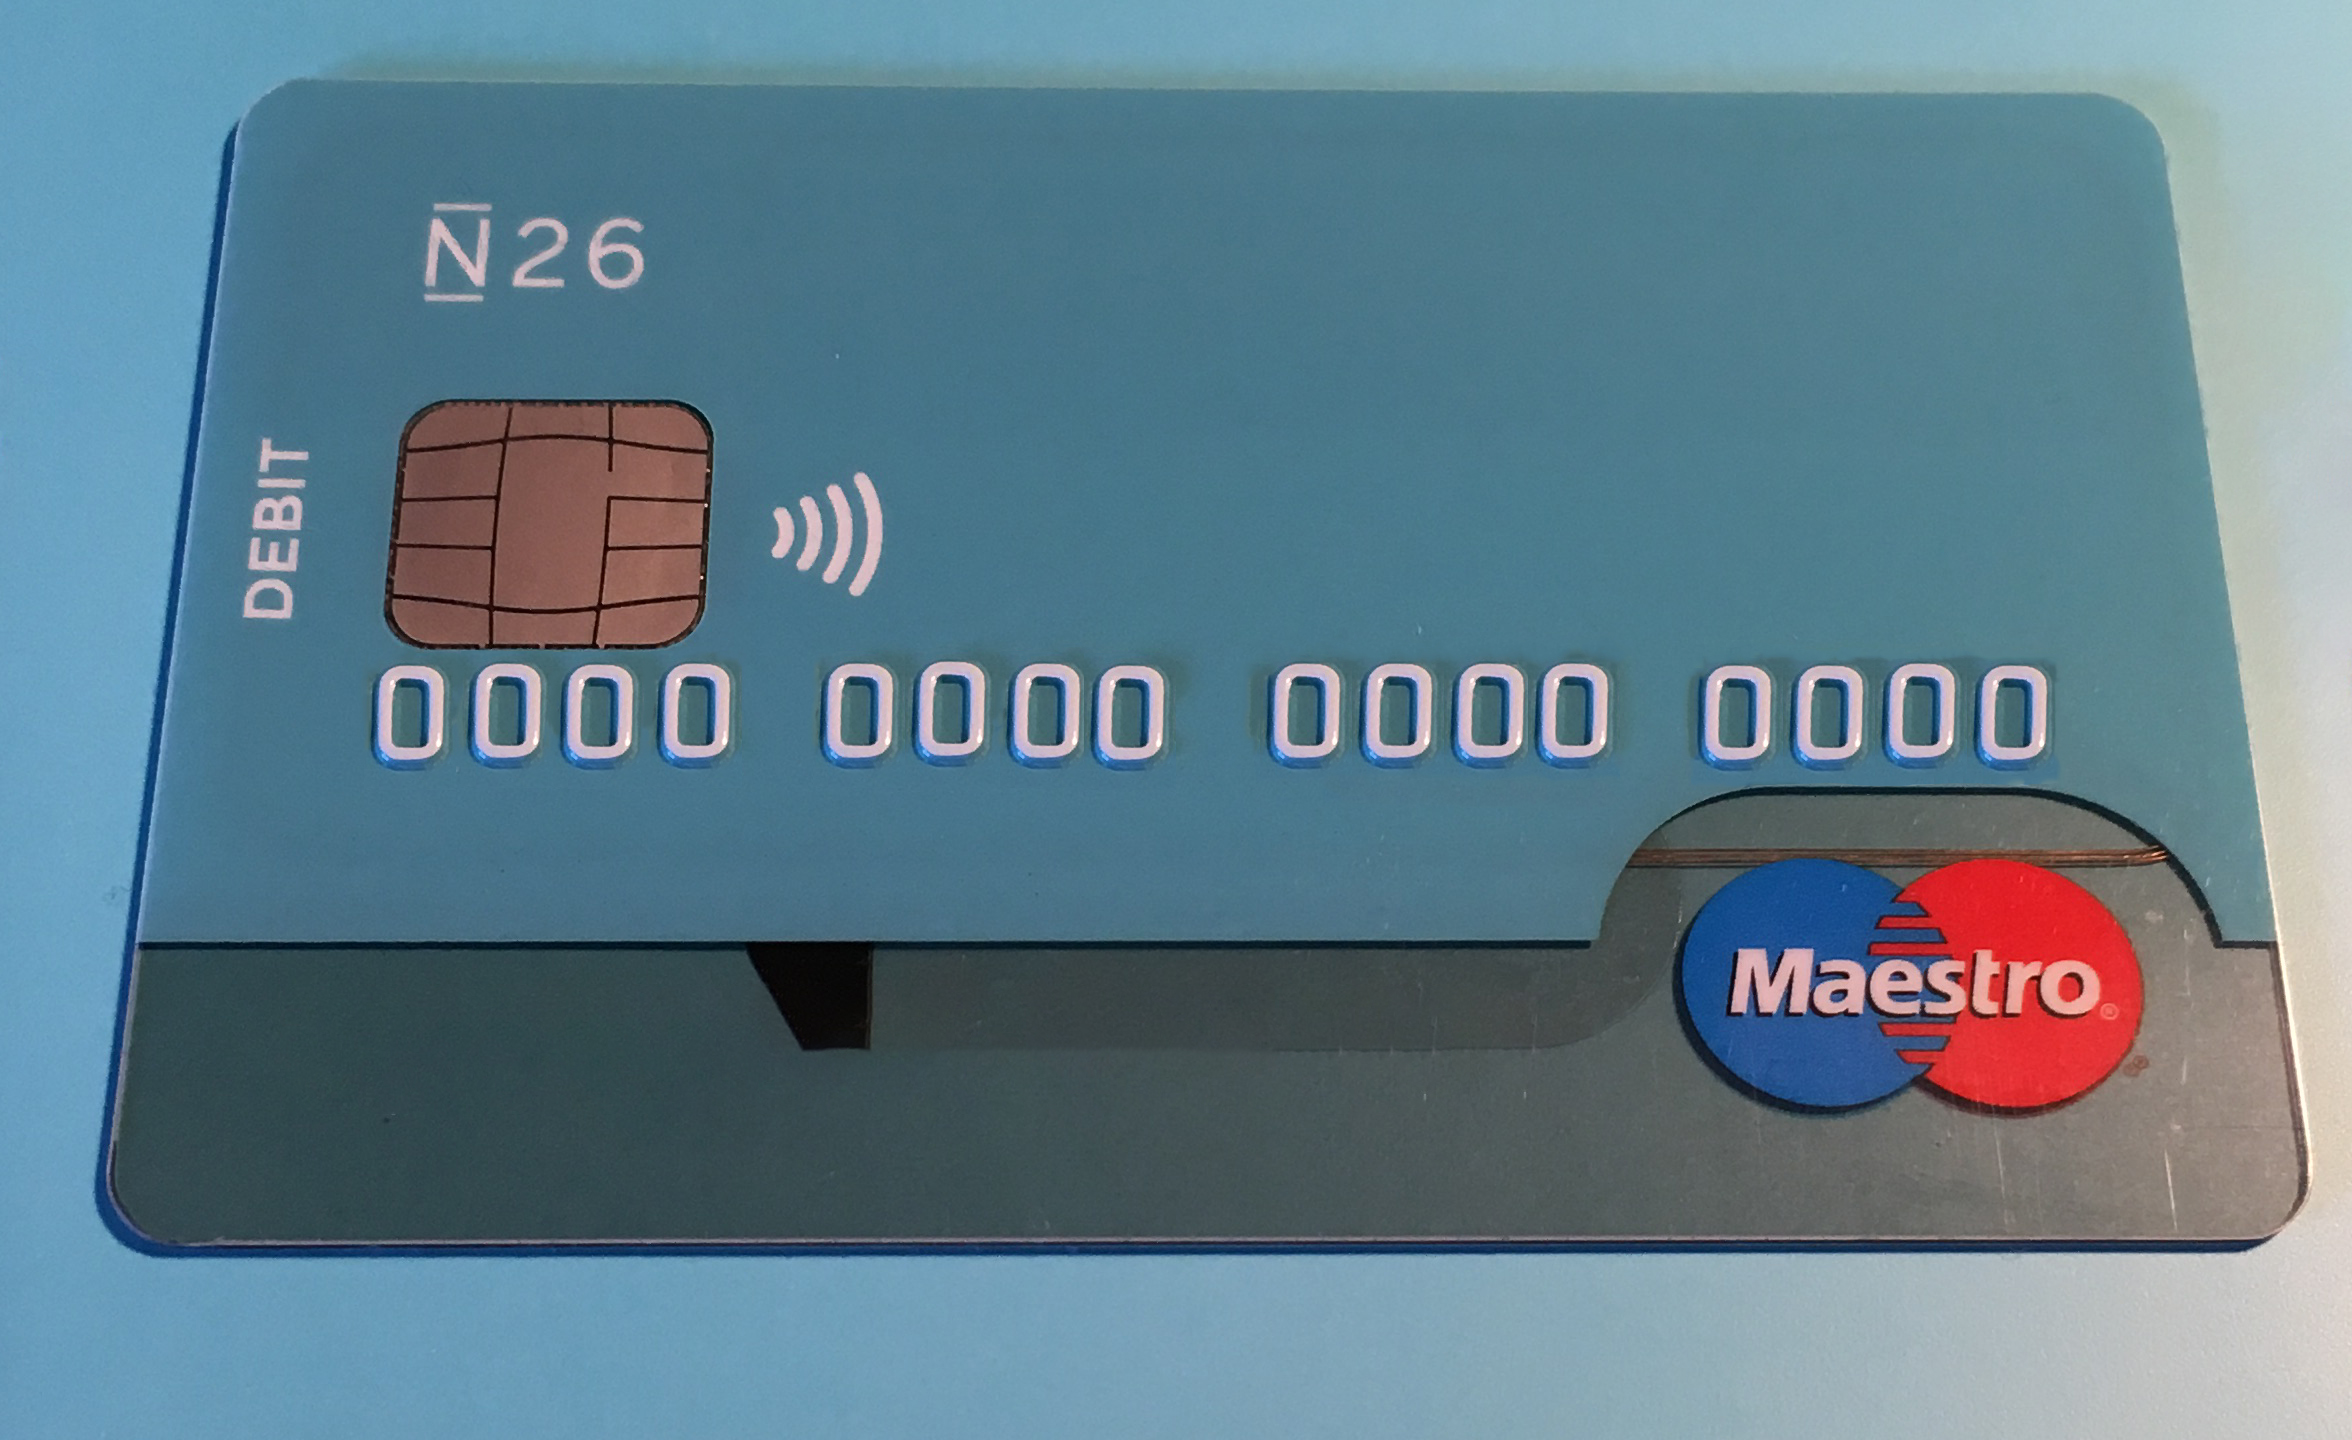 Maestro (debit card) - Wikipedia